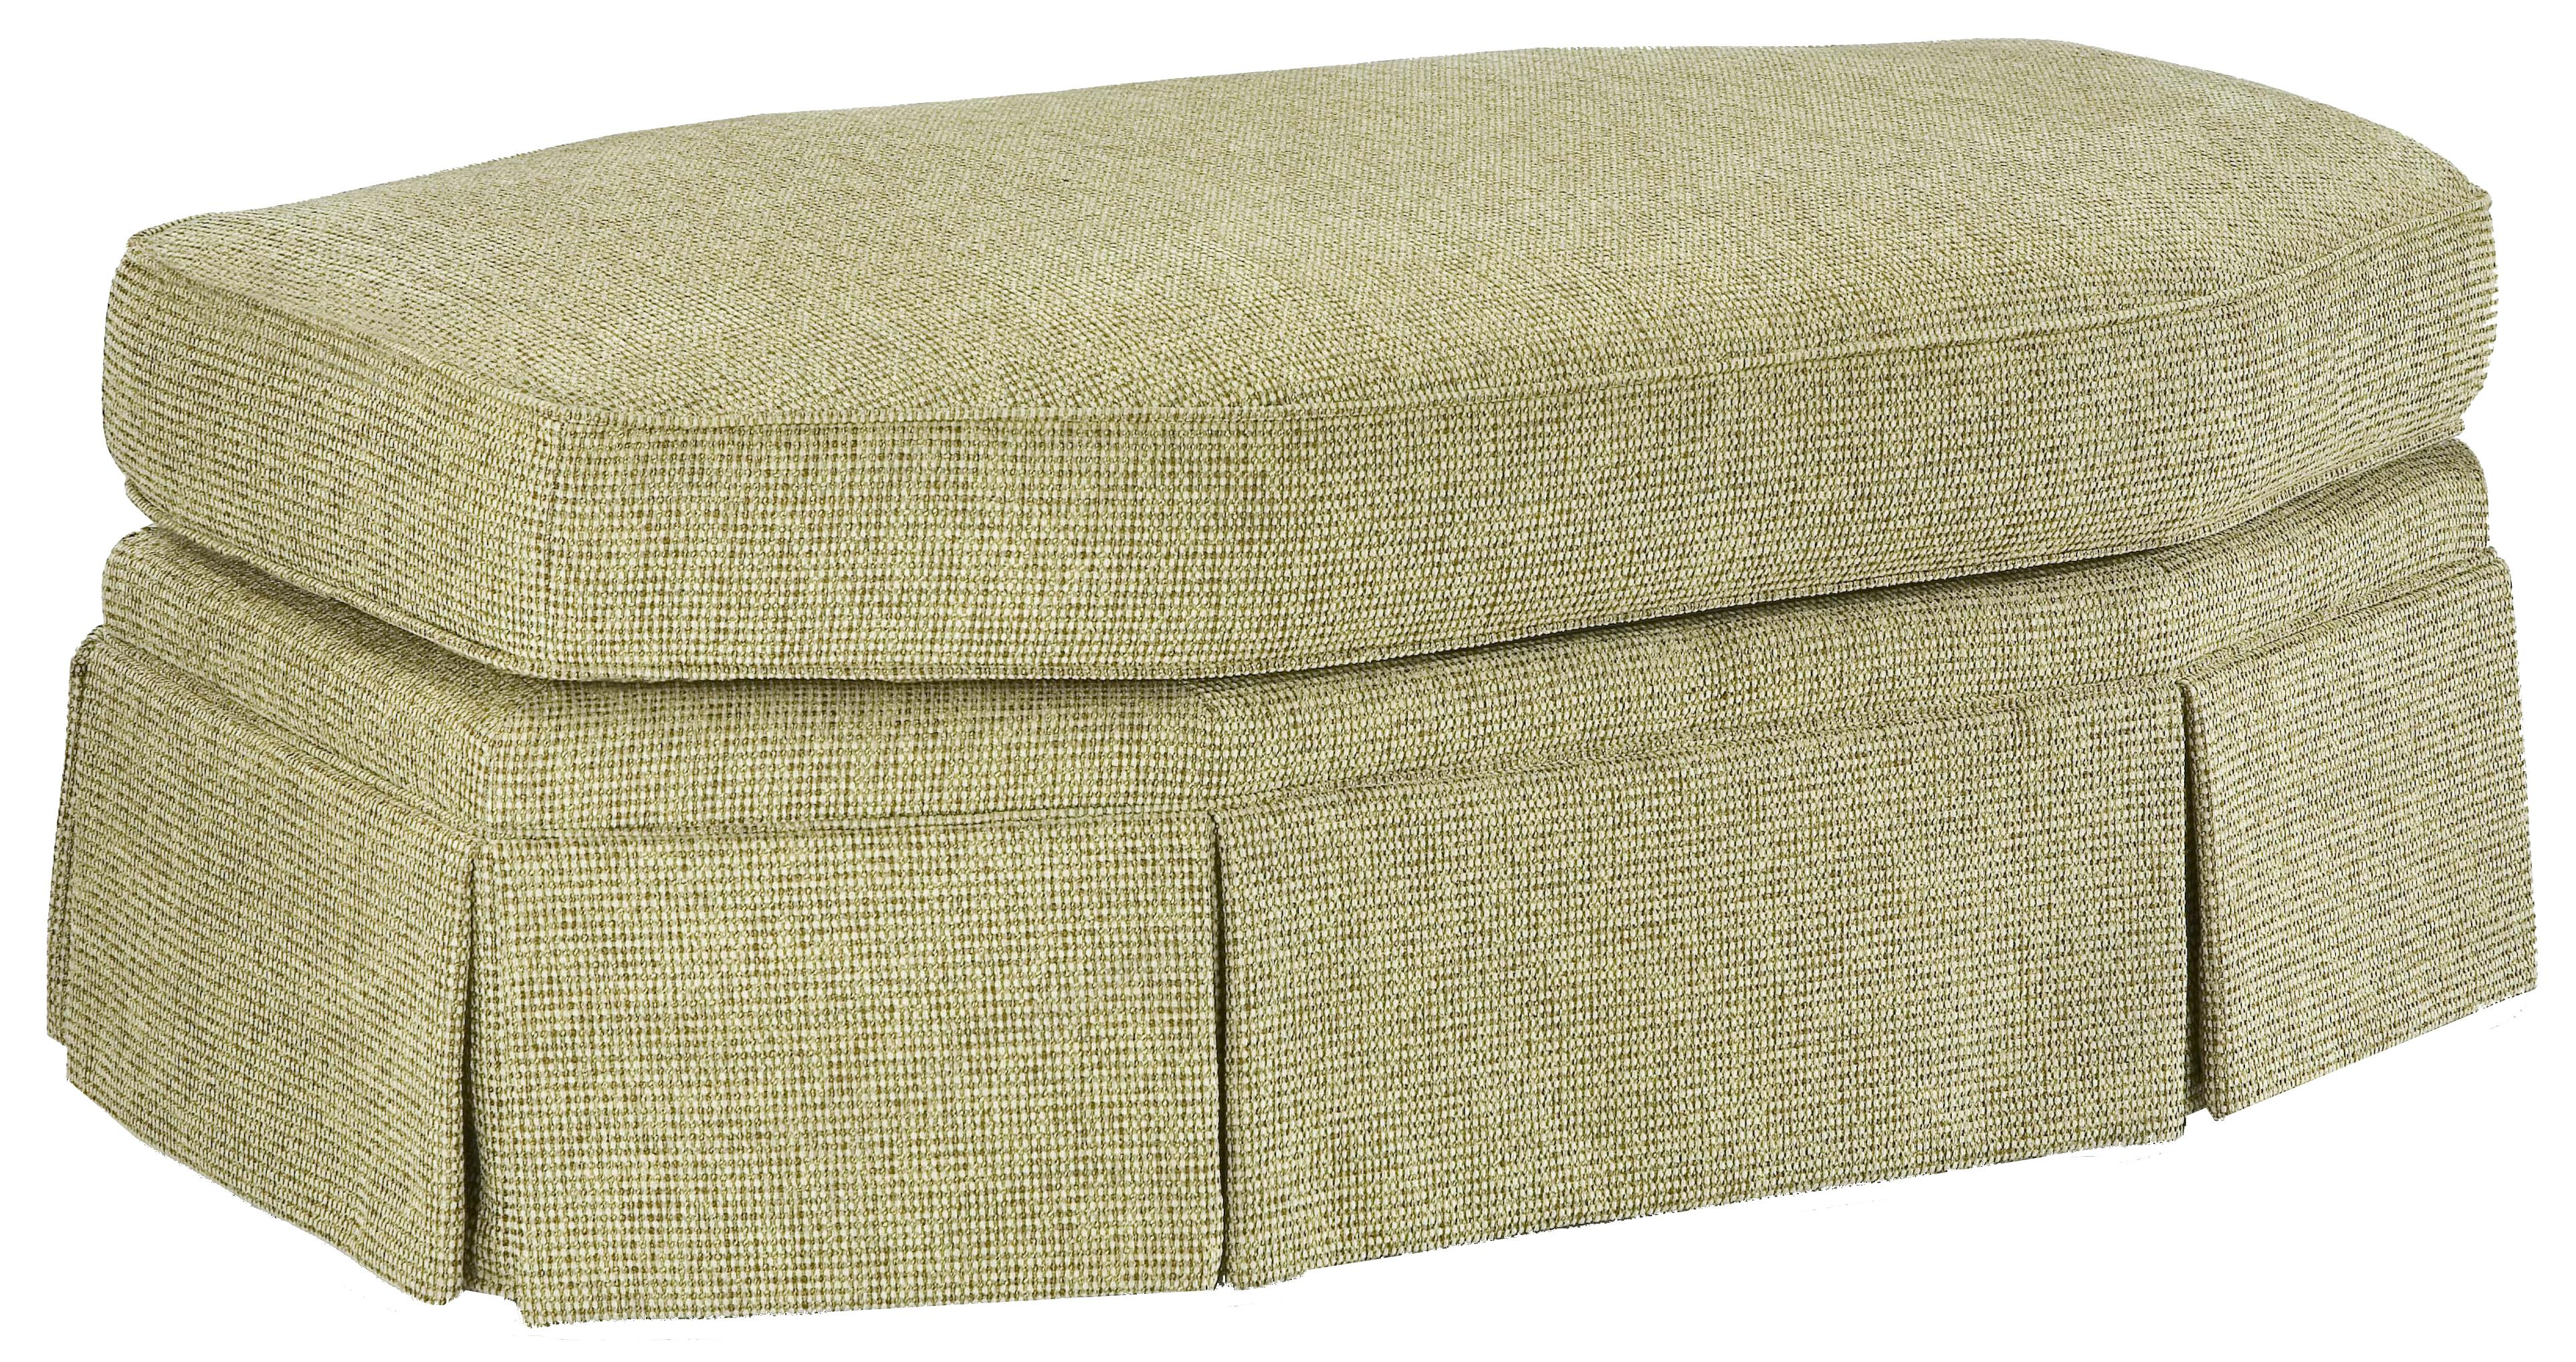 3766 Eight-Sided Oval Ottoman by Grove Park at Sprintz Furniture